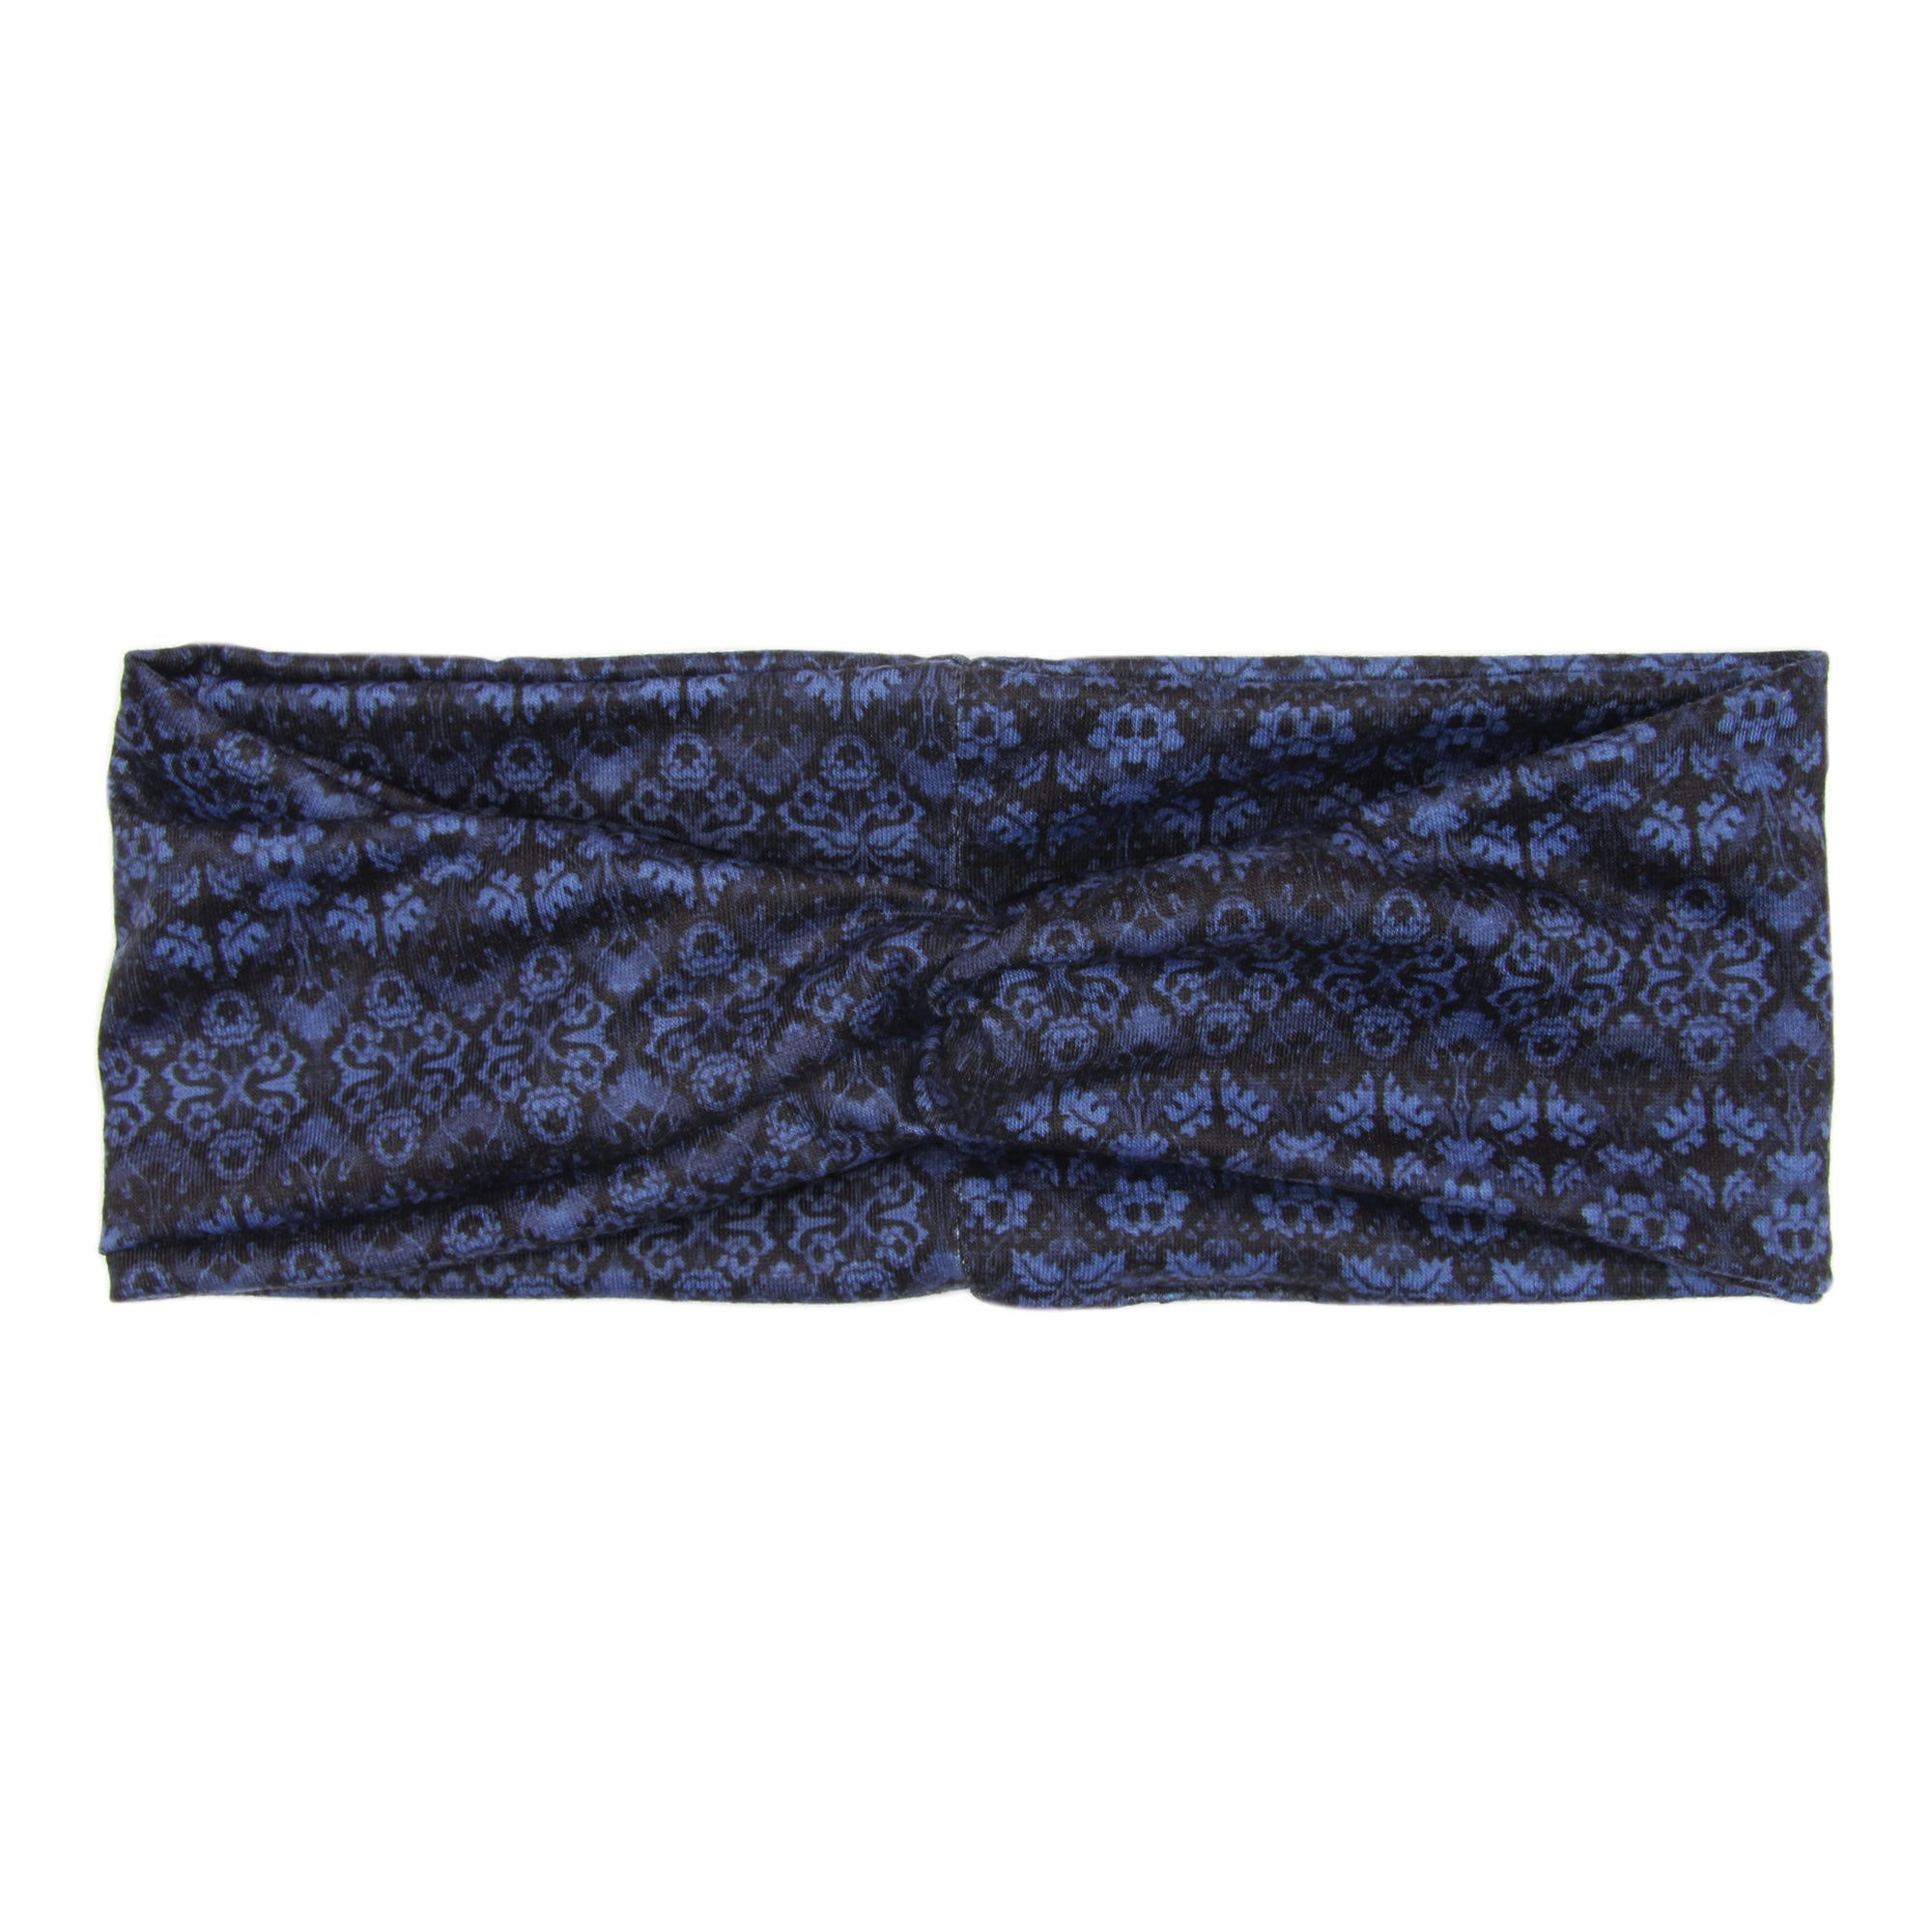 BANDED Women's Headwraps + Hair Accessories - Blue Brocade - Classic Twist Headwrap